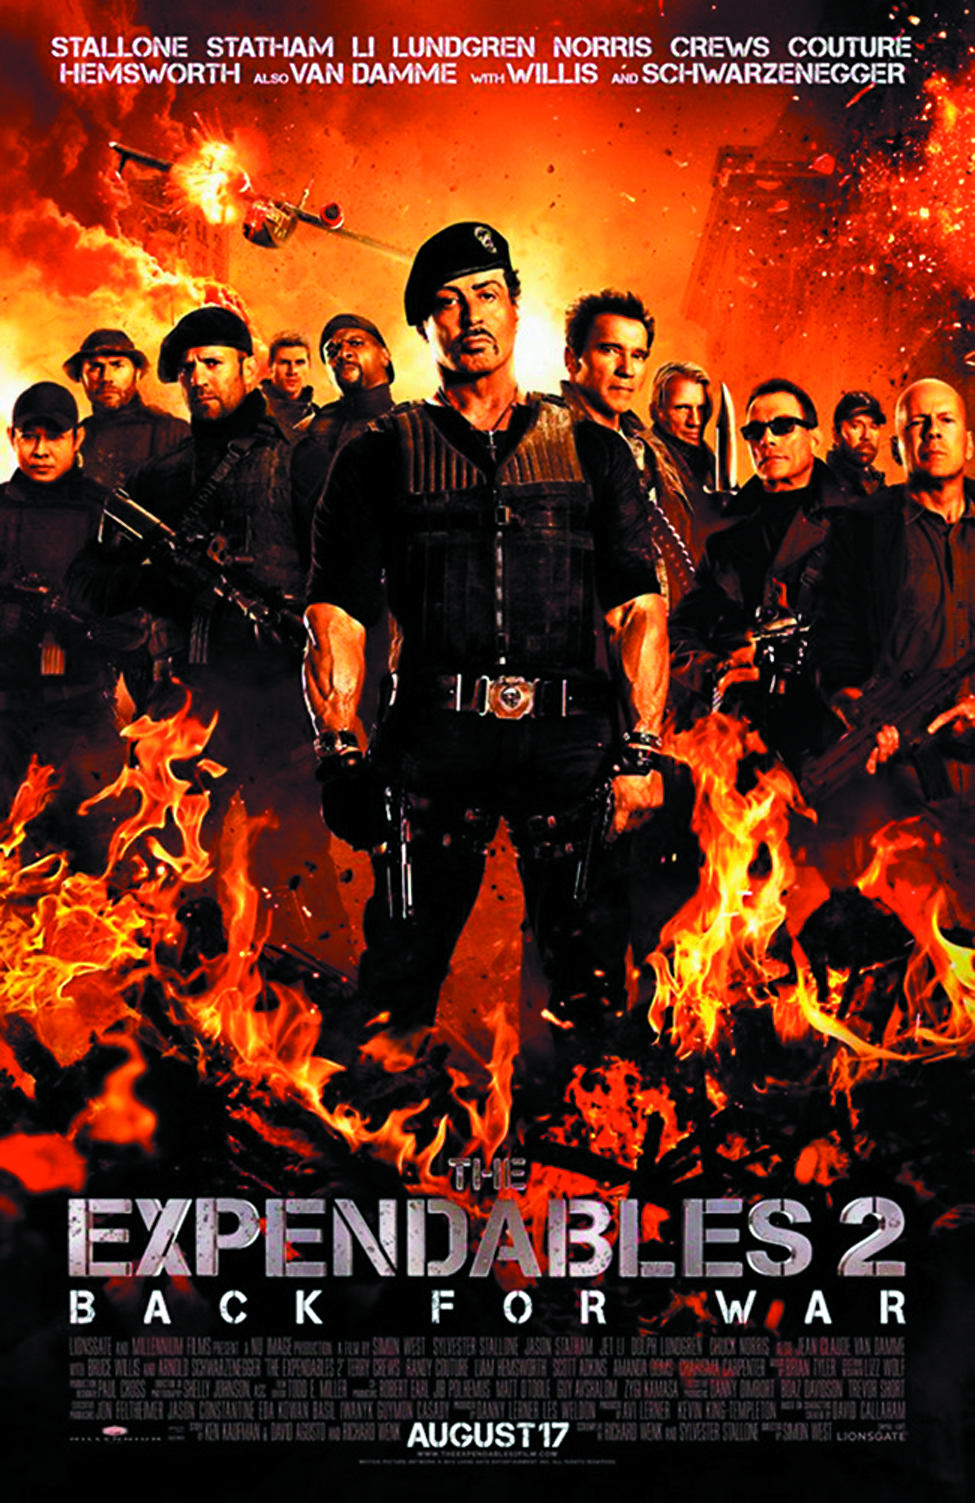 EXPENDABLES 2 BD